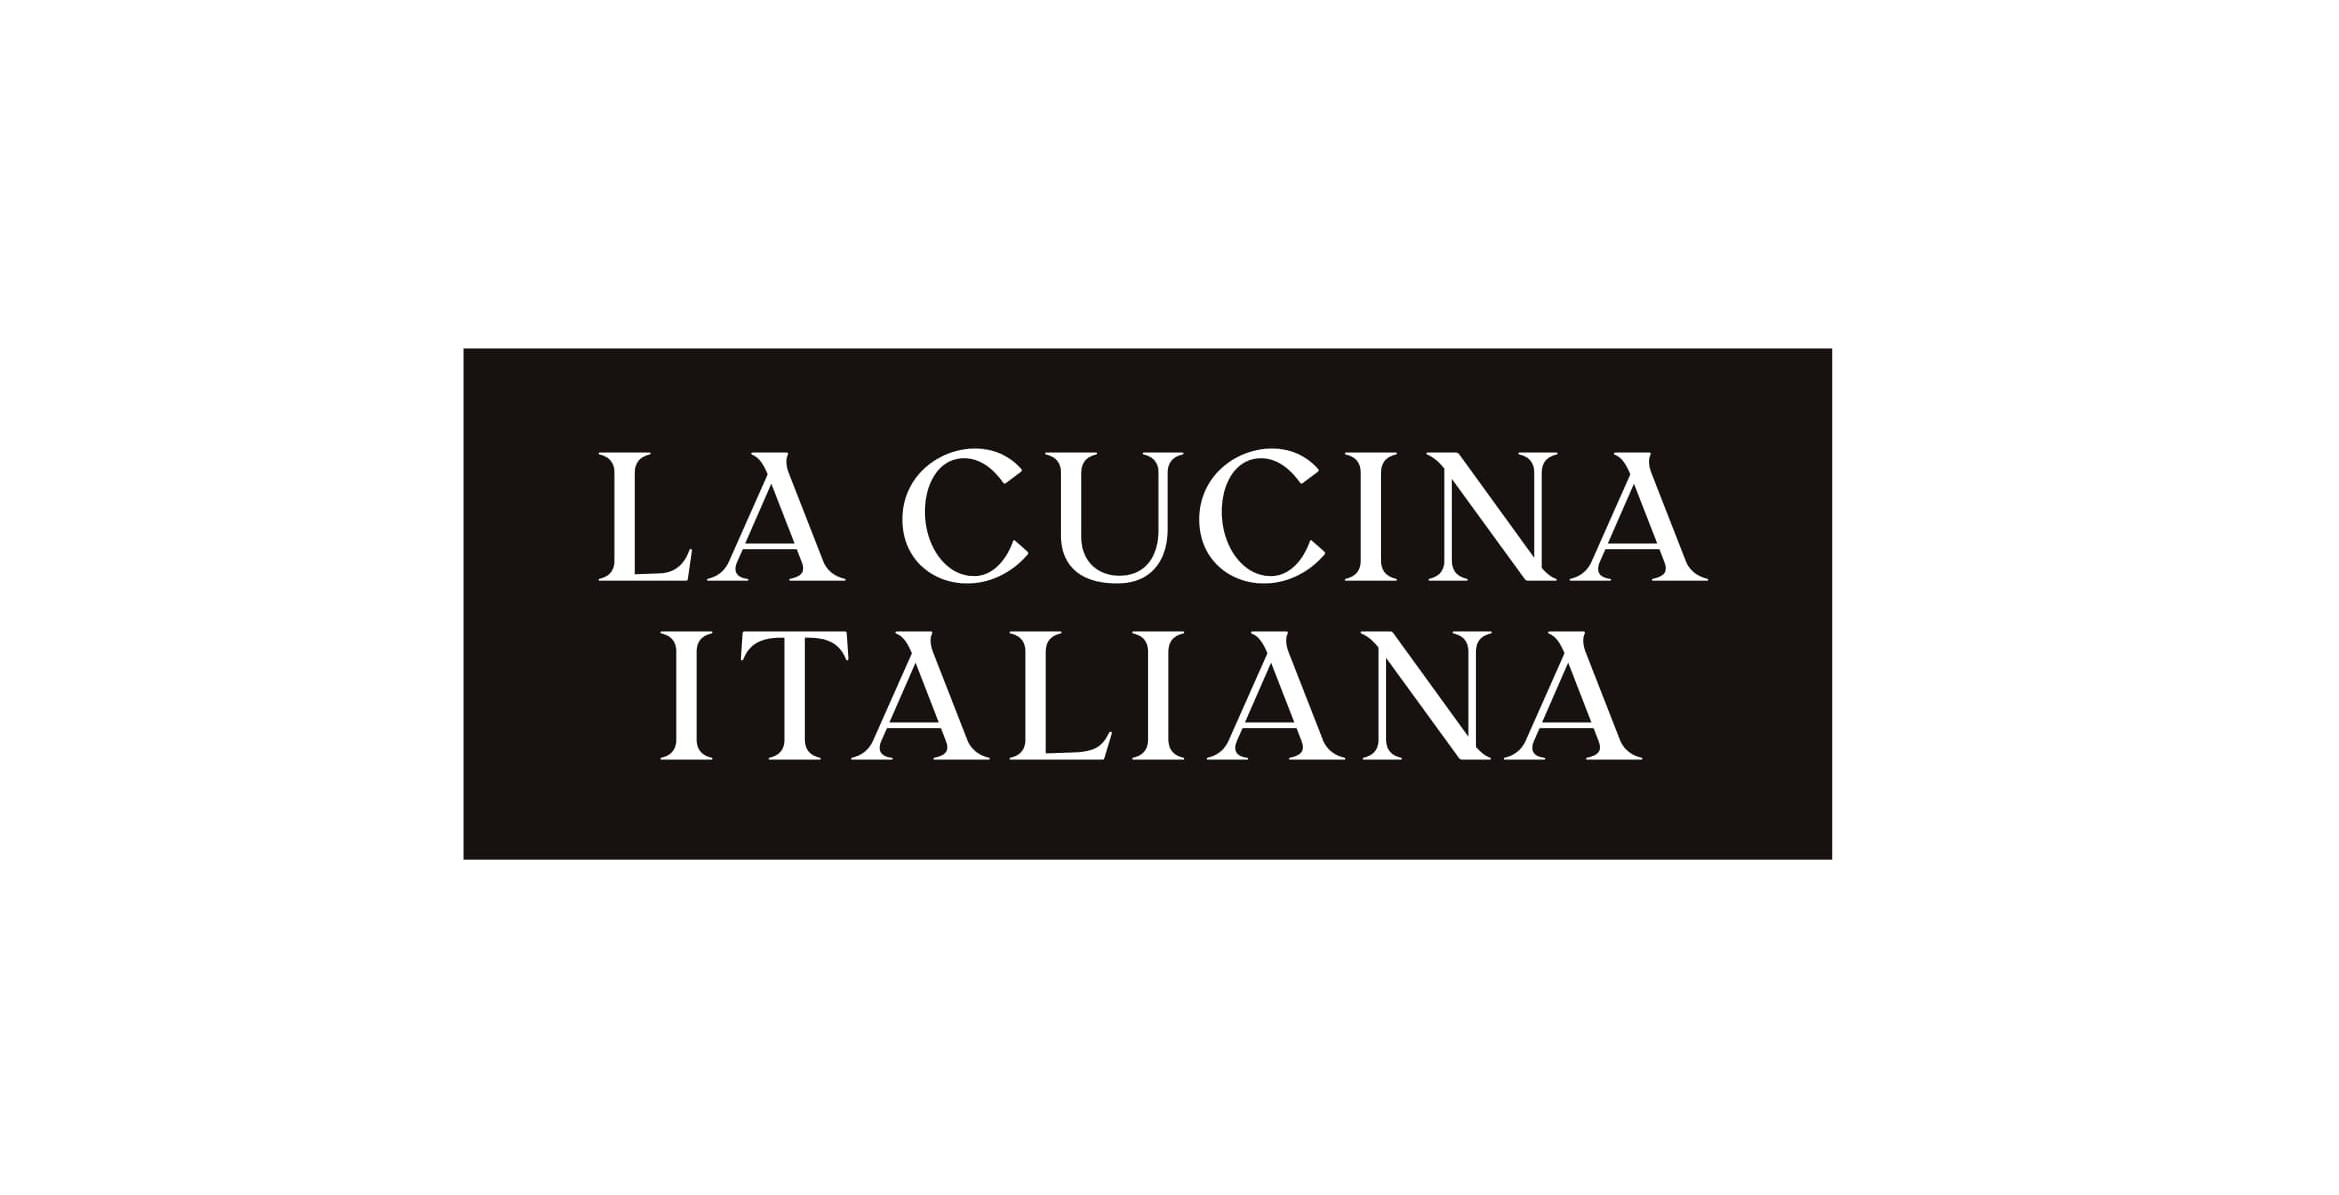 Voda.it/cucina Italiana I Nostri Partner Airc